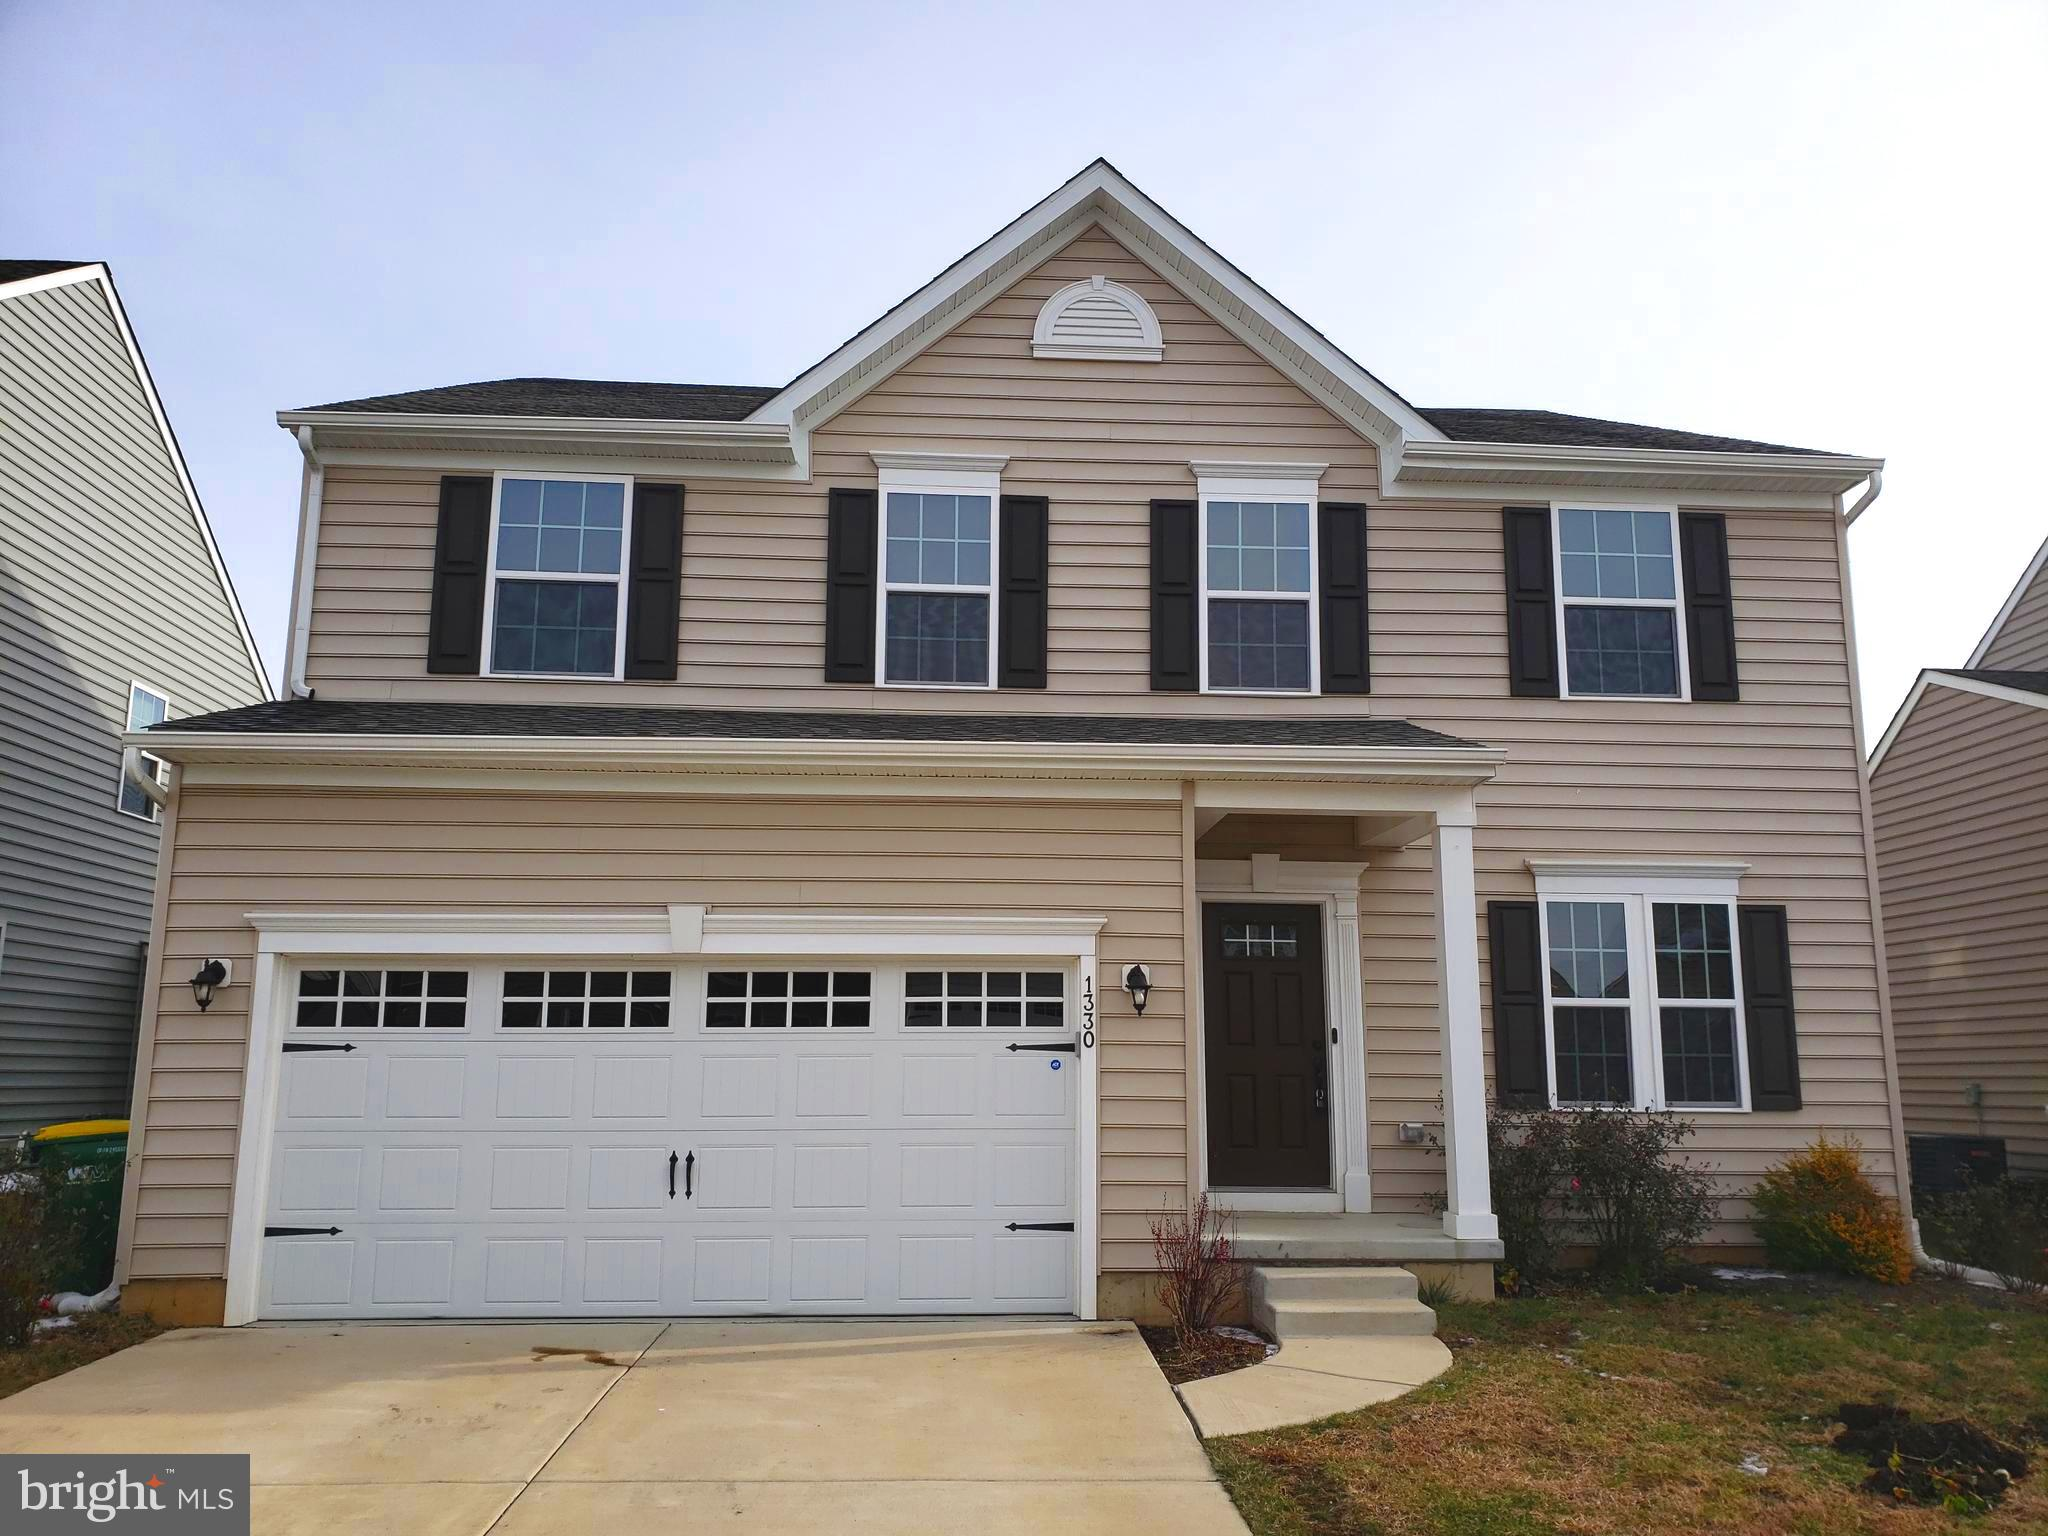 This well-maintained, one-previous-owner, 3 bedroom 2.5 bath home is located in the desirable High Hook Farms community -- central to modern amenities. Among the many features of this home are granite countertops, stainless steel appliances, upgraded kitchen flooring, and tiled showers. Additionally, this home boasts plenty of living space throughout the family room, sitting room, formal dining room, an oversized loft, and a partially finished basement. This home offers convenience and  with an upstairs laundry and a large maintenance-free composite deck.